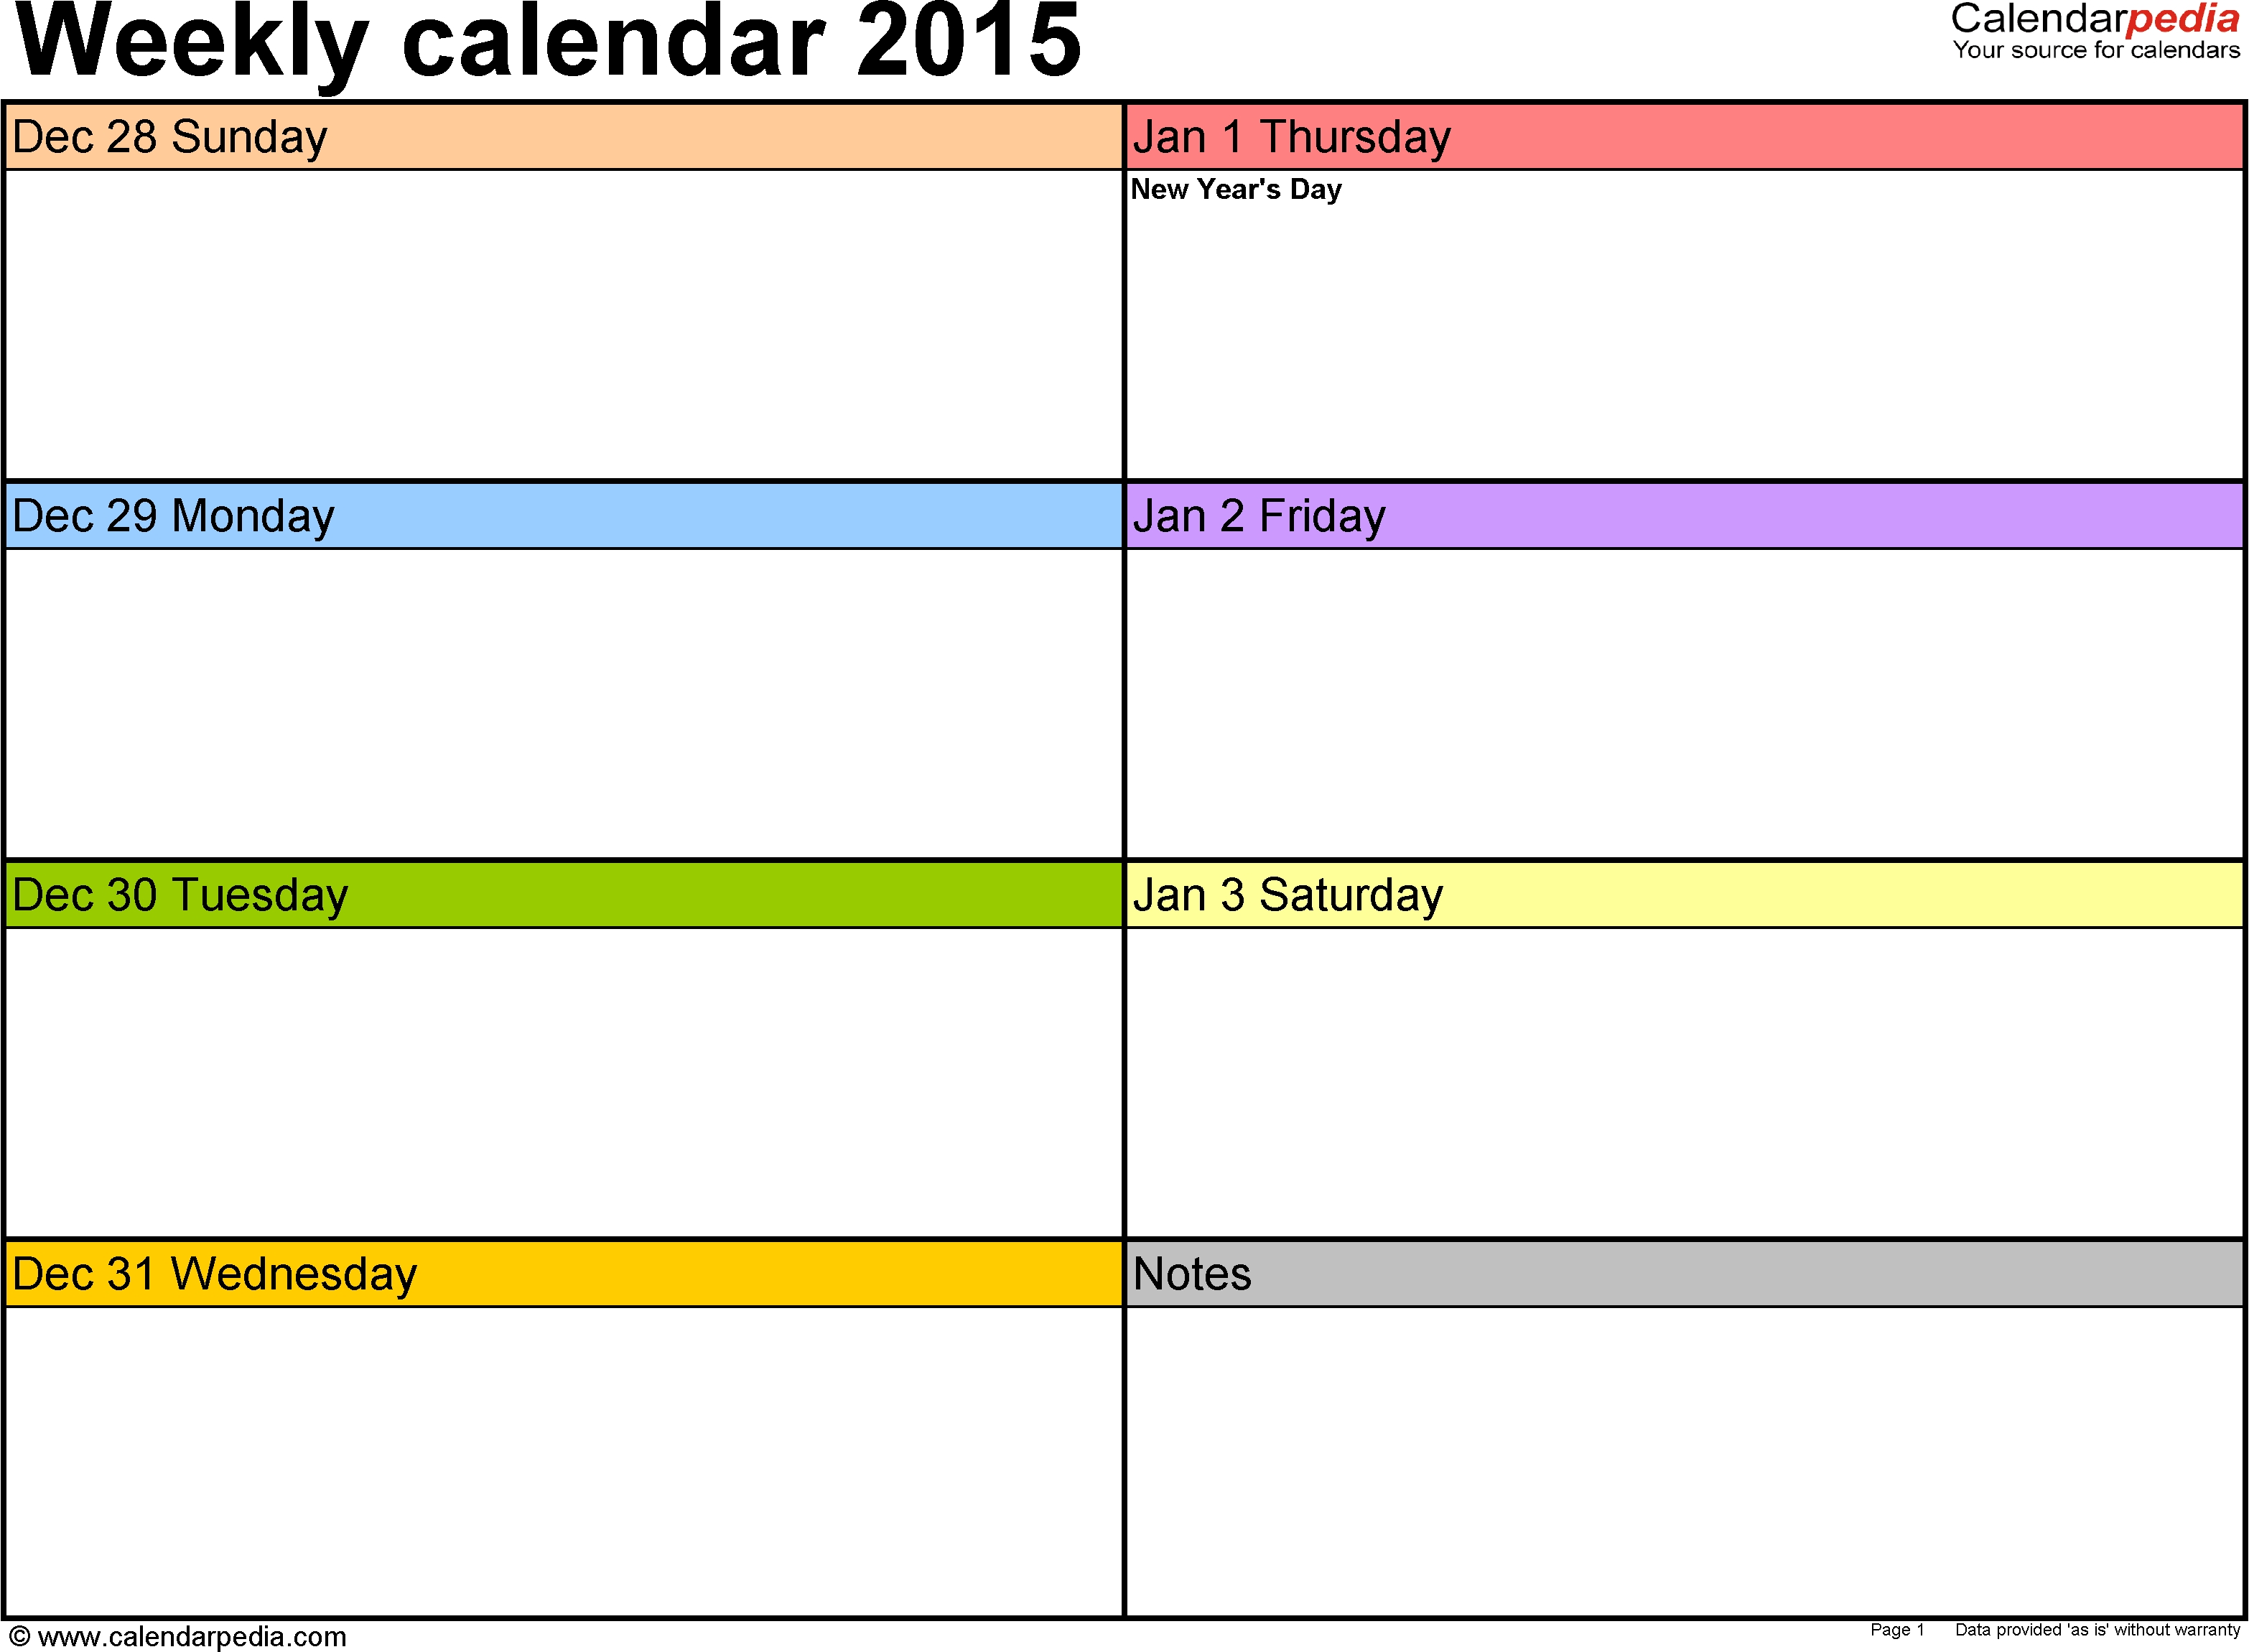 Weekly Calendar 2015 For Excel - 12 Free Printable Templates Free Printable 2 Week Calendar Template